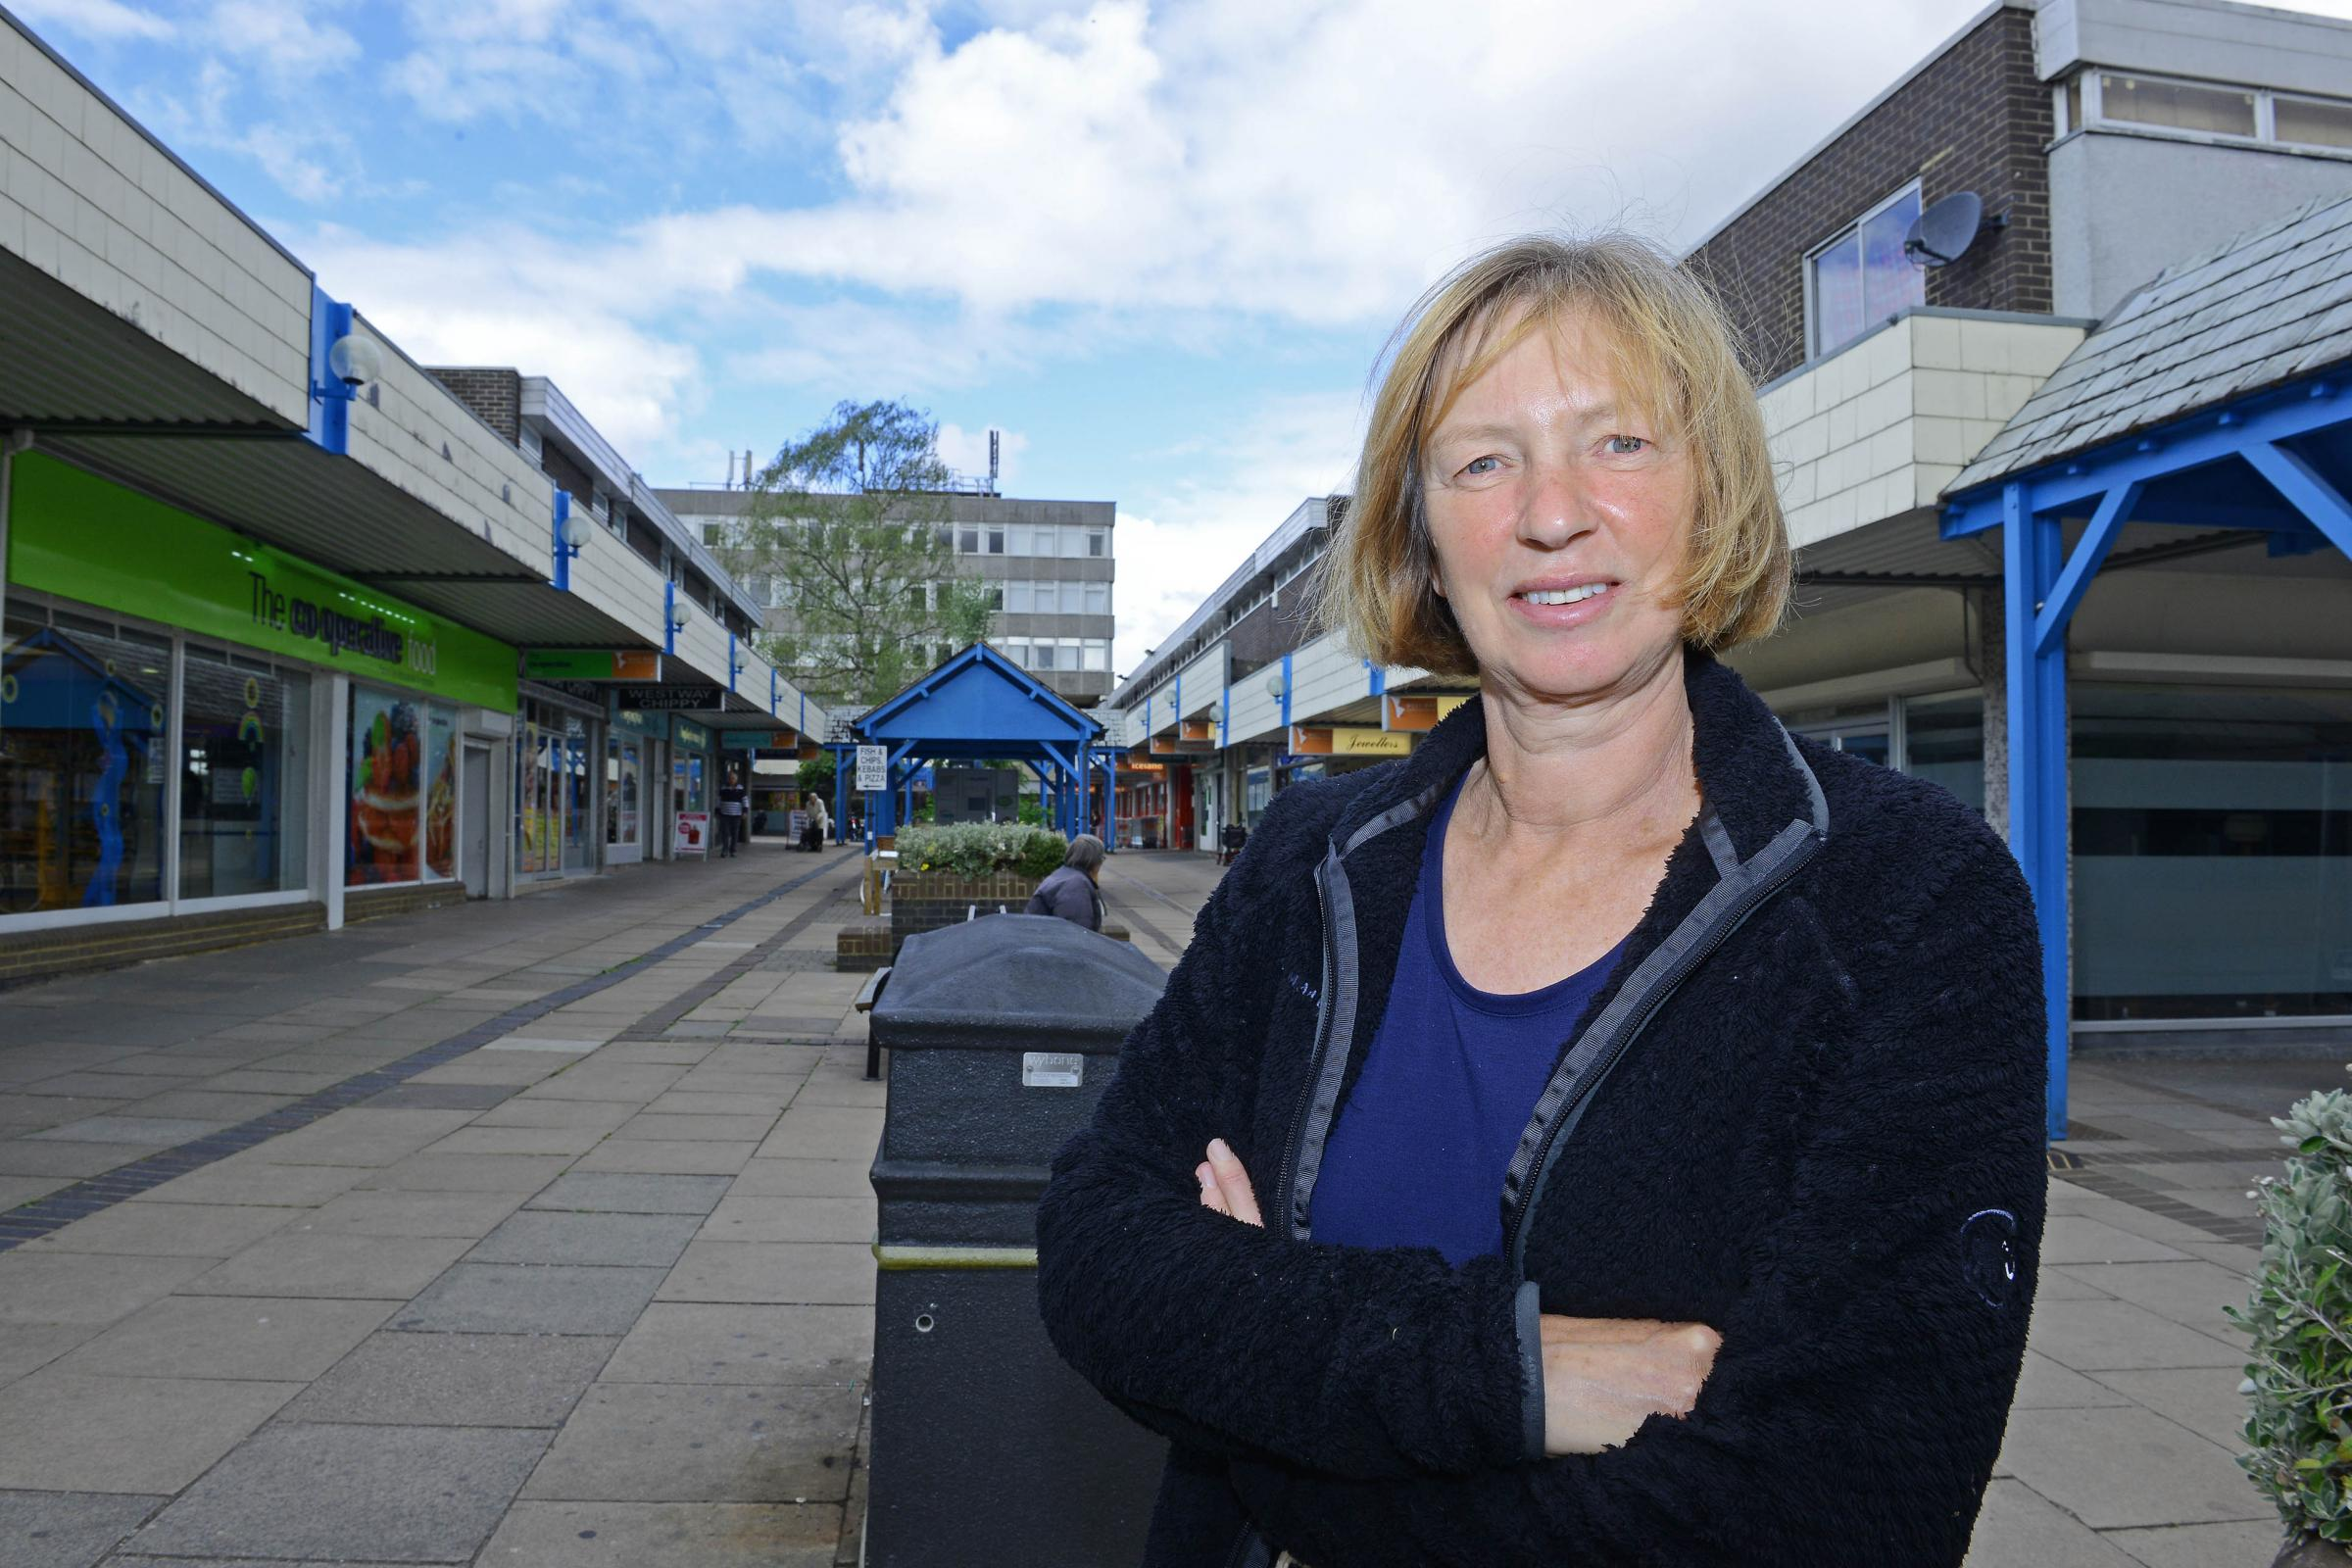 West Way Community Concern co-chairwoman Mary Gill